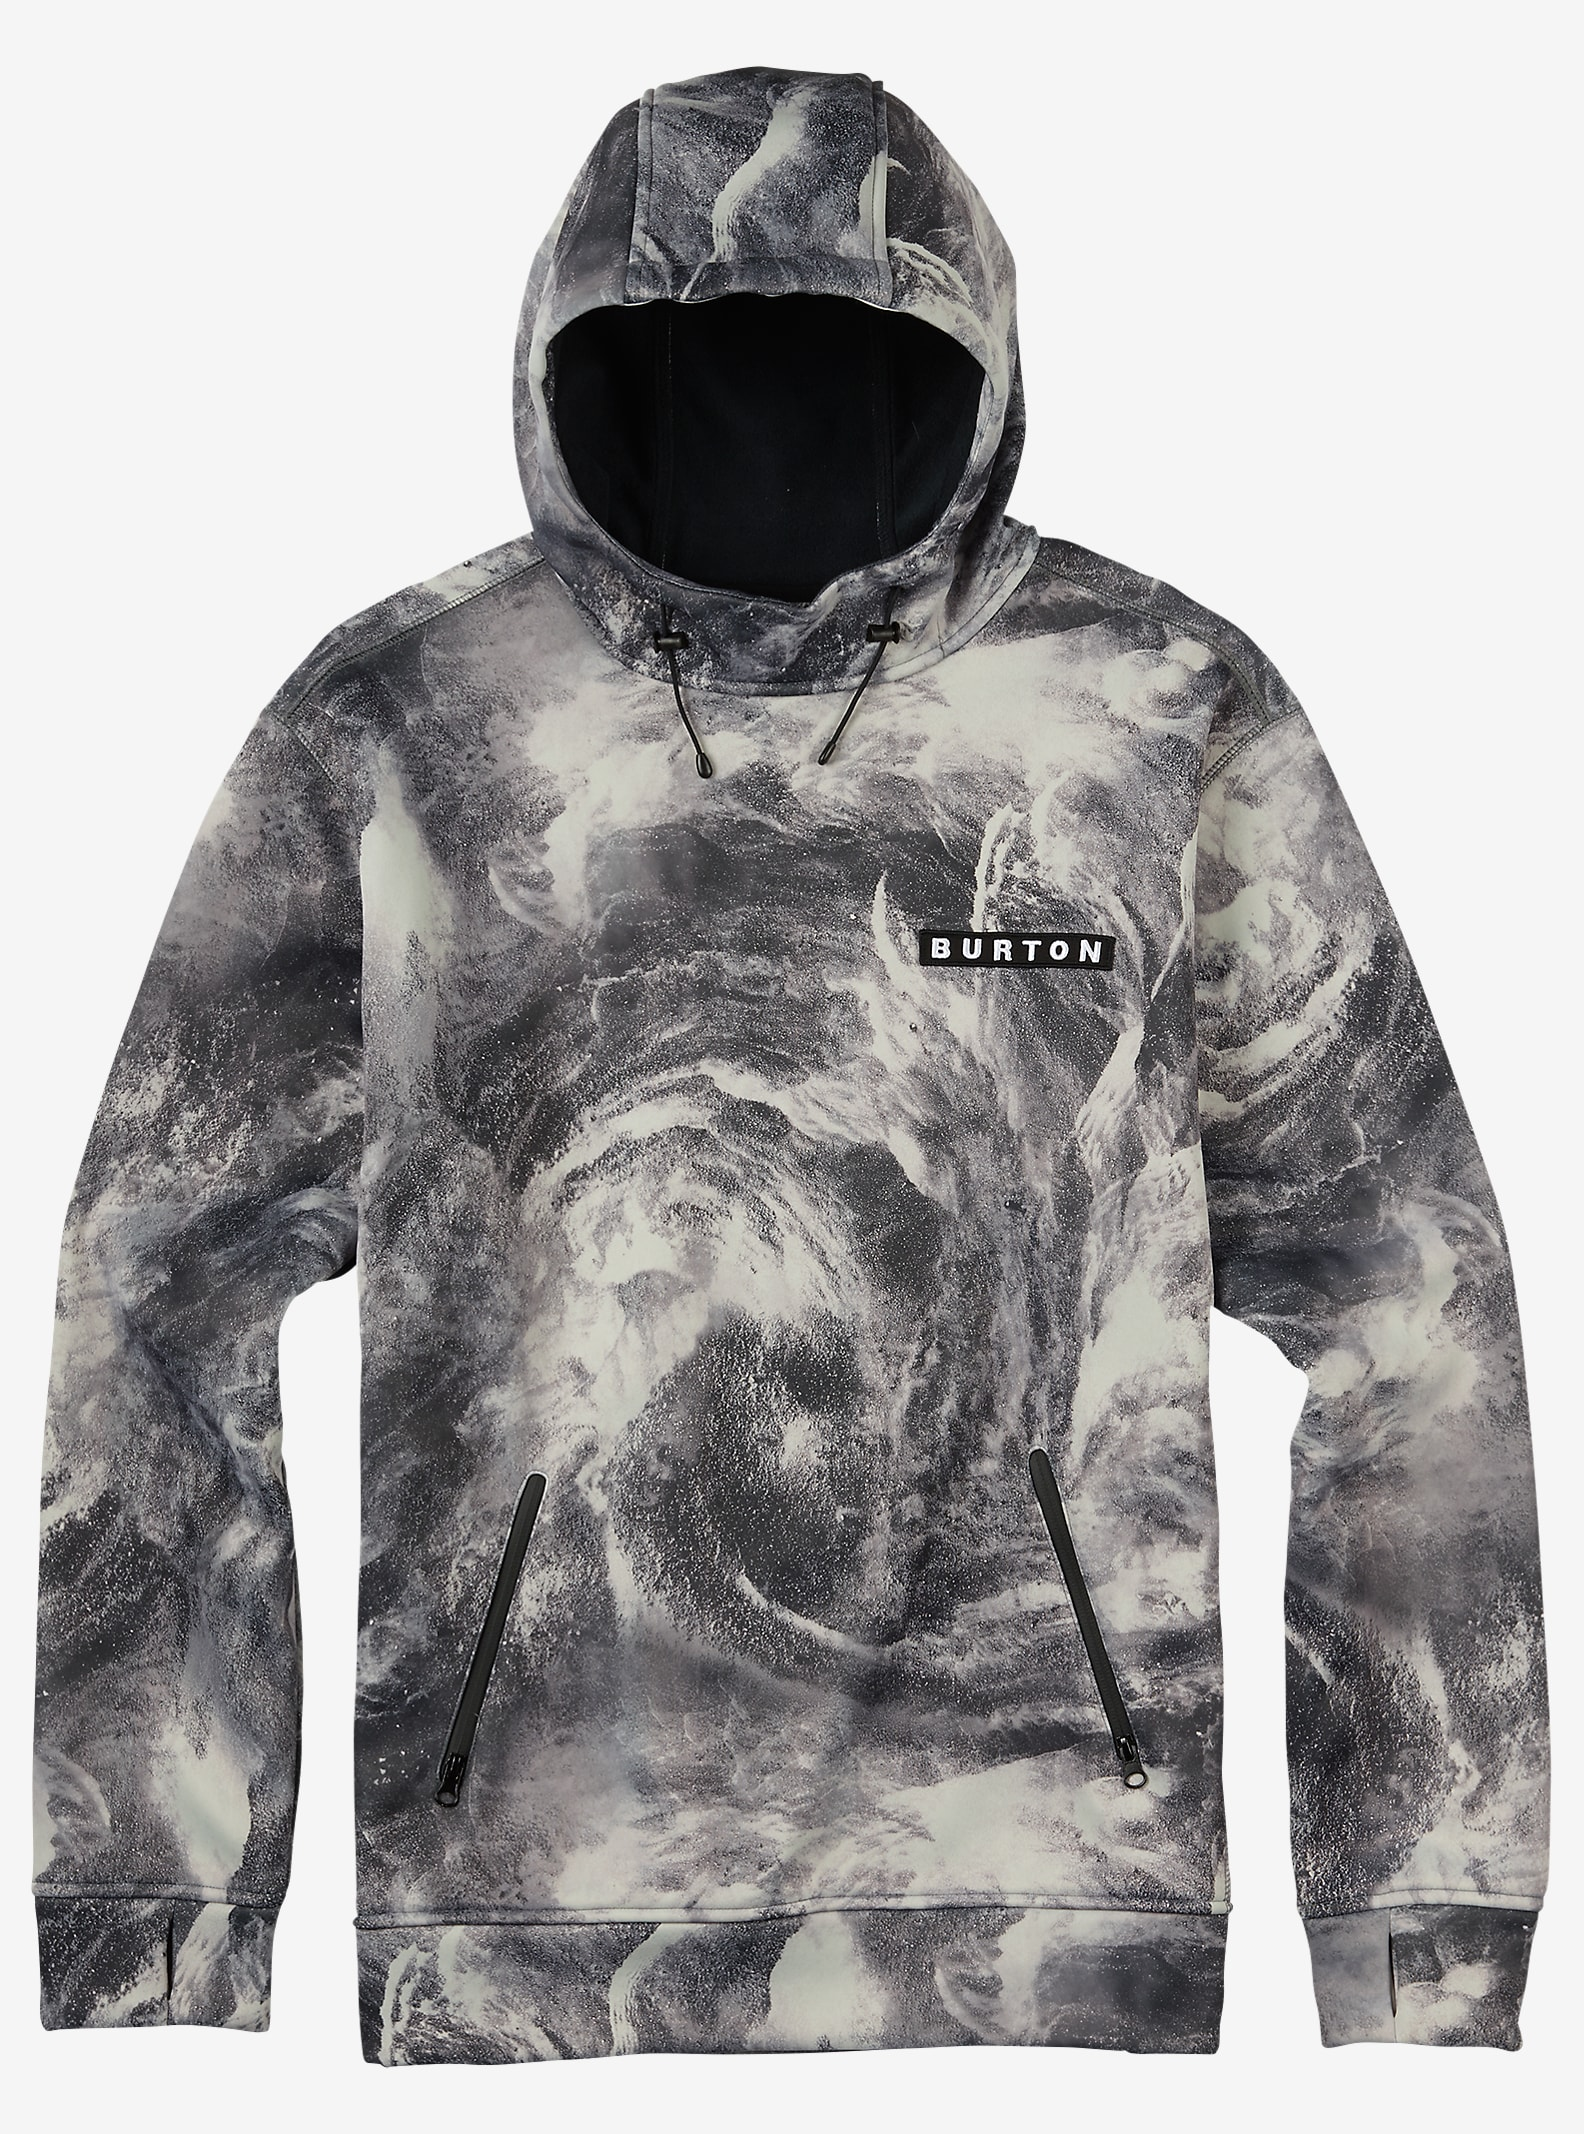 Burton Crown Bonded Pullover Hoodie shown in Air